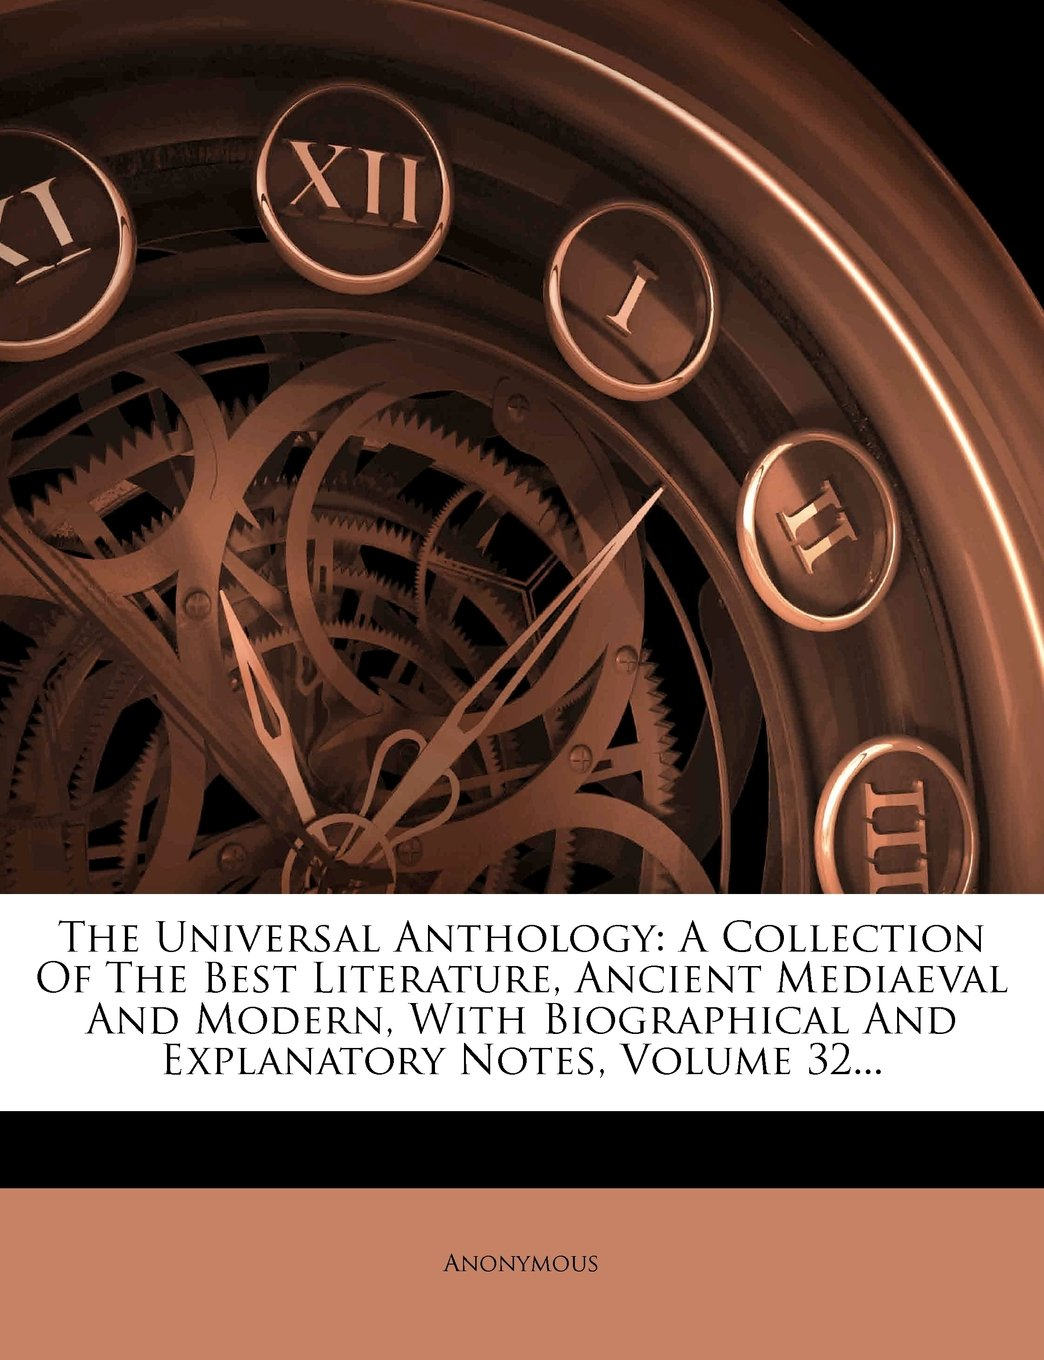 Read Online The Universal Anthology: A Collection Of The Best Literature, Ancient Mediaeval And Modern, With Biographical And Explanatory Notes, Volume 32... pdf